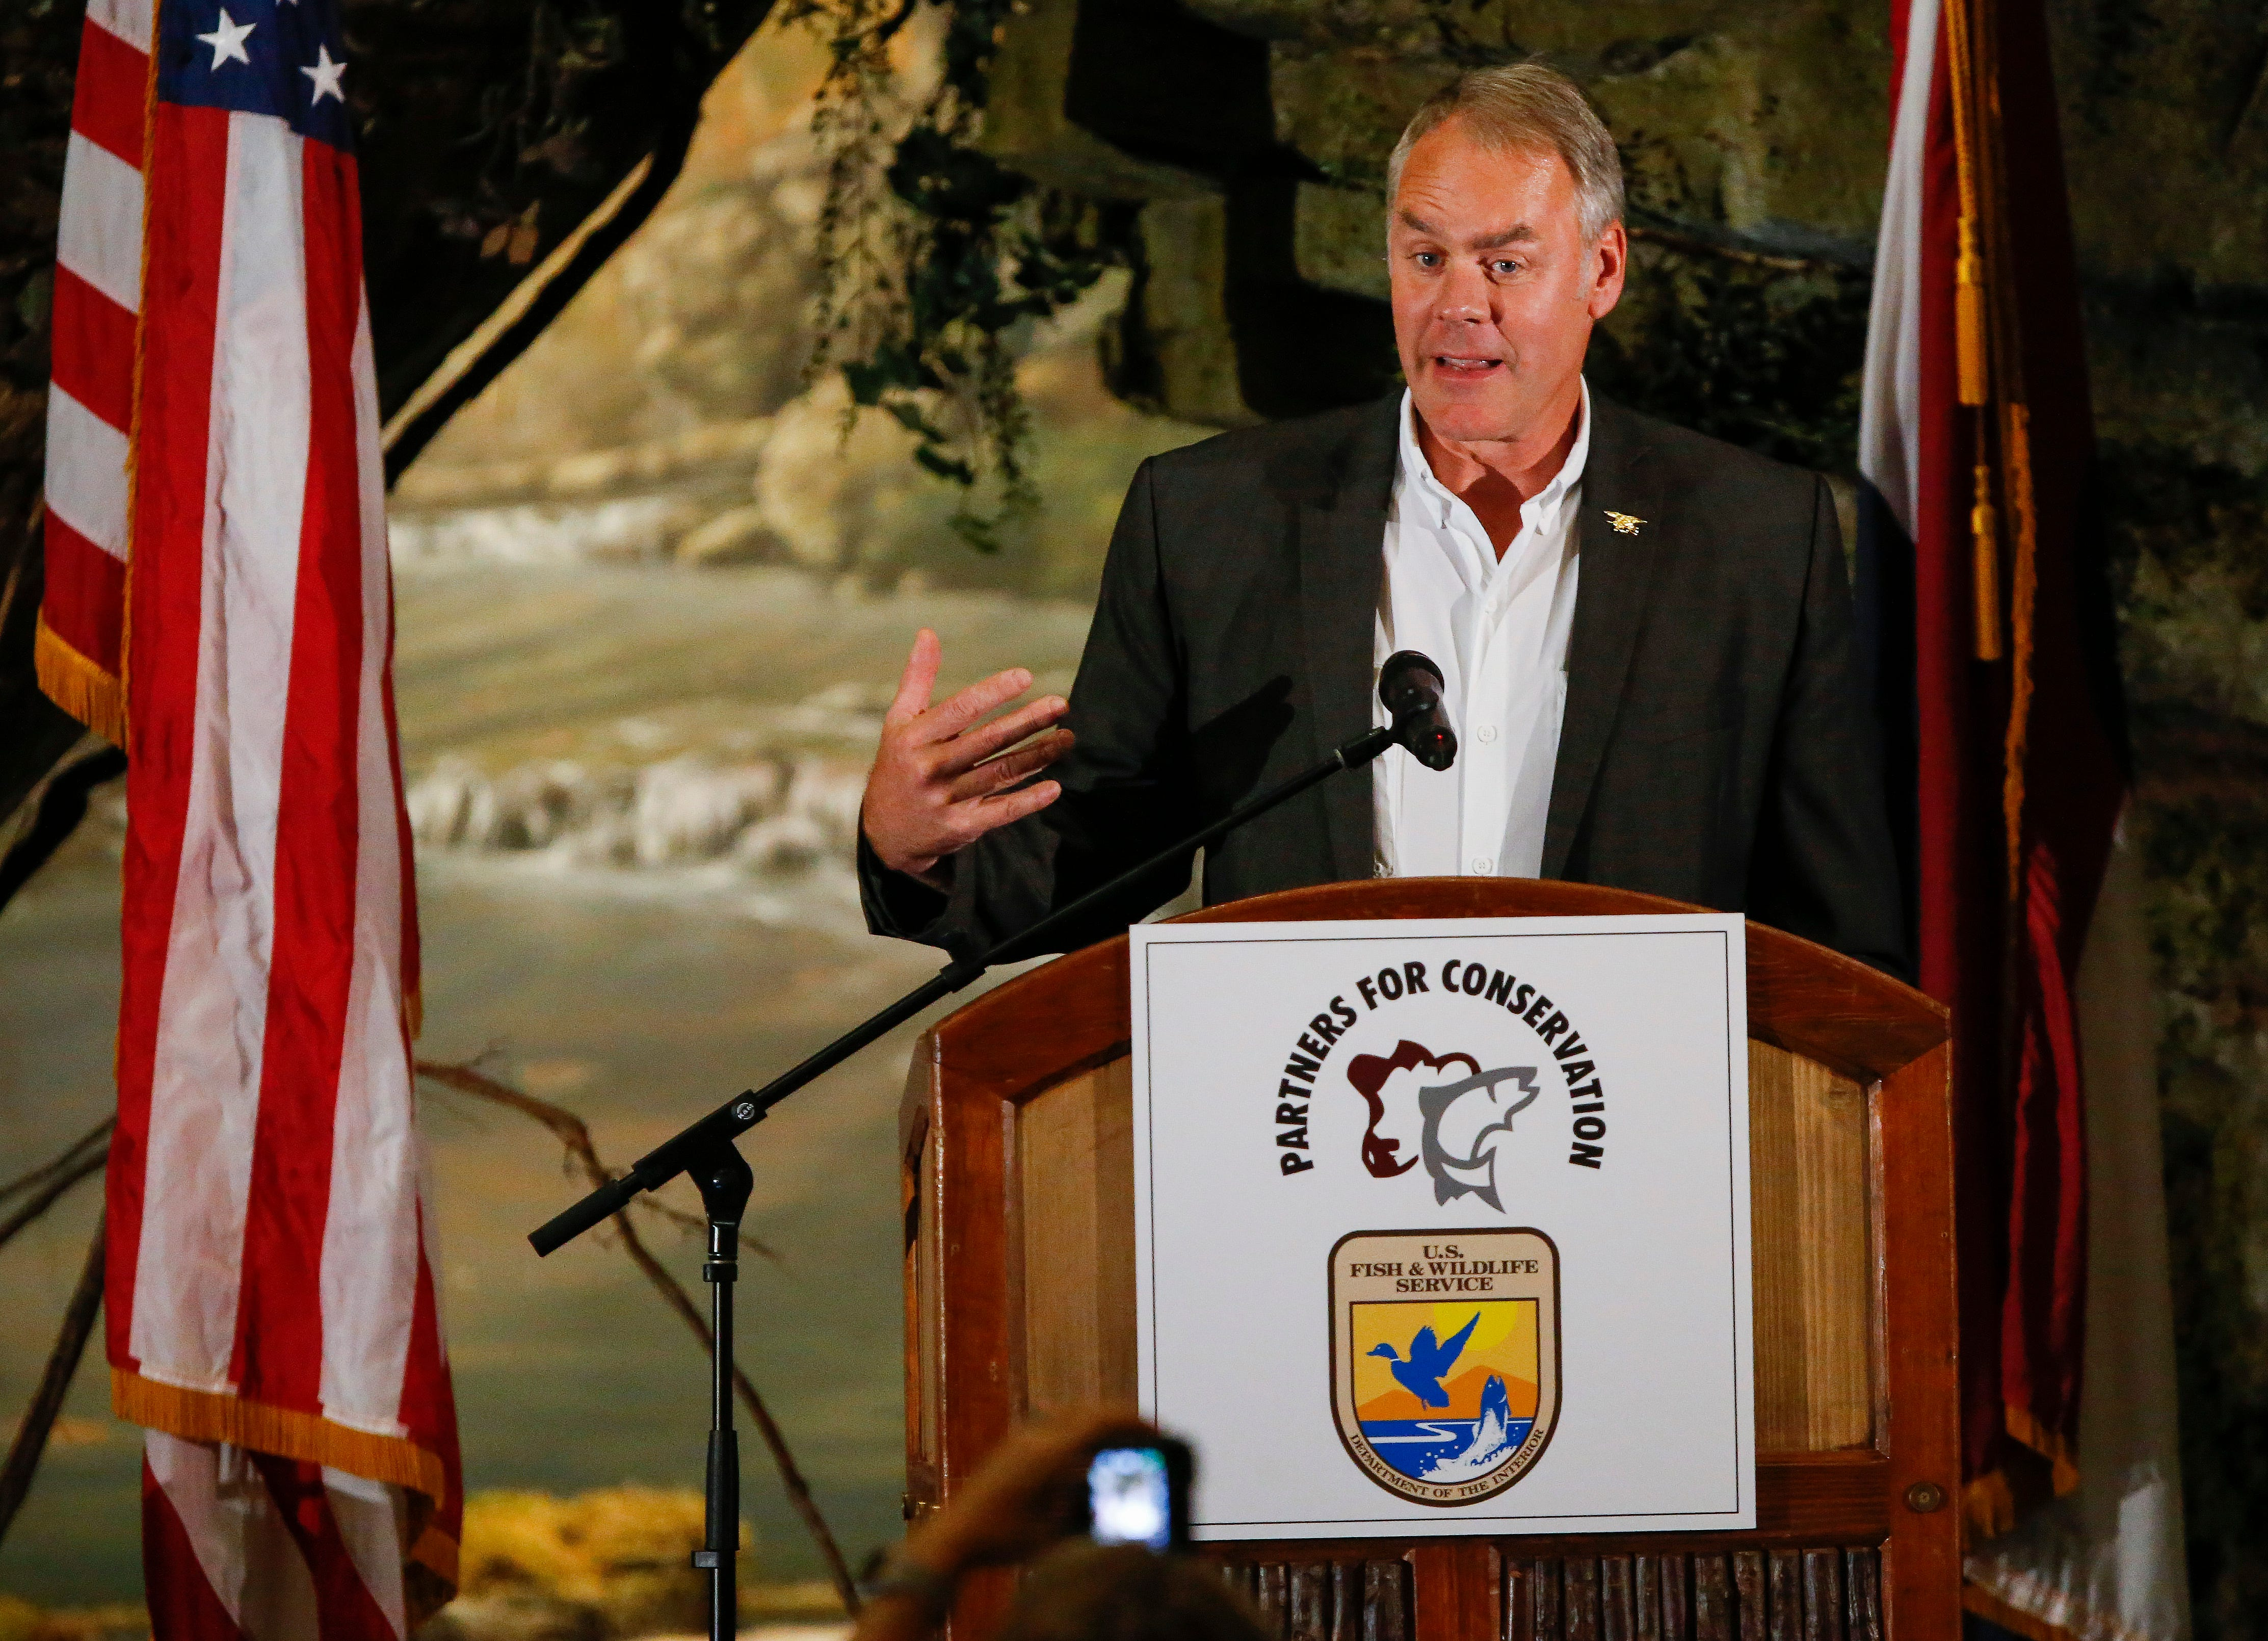 U.S. Secretary of the Interior Ryan Zinke speaks during the 11th Annual Private Lands Partners Day at the White River Conference Center on Thursday, Oct. 4, 2018.